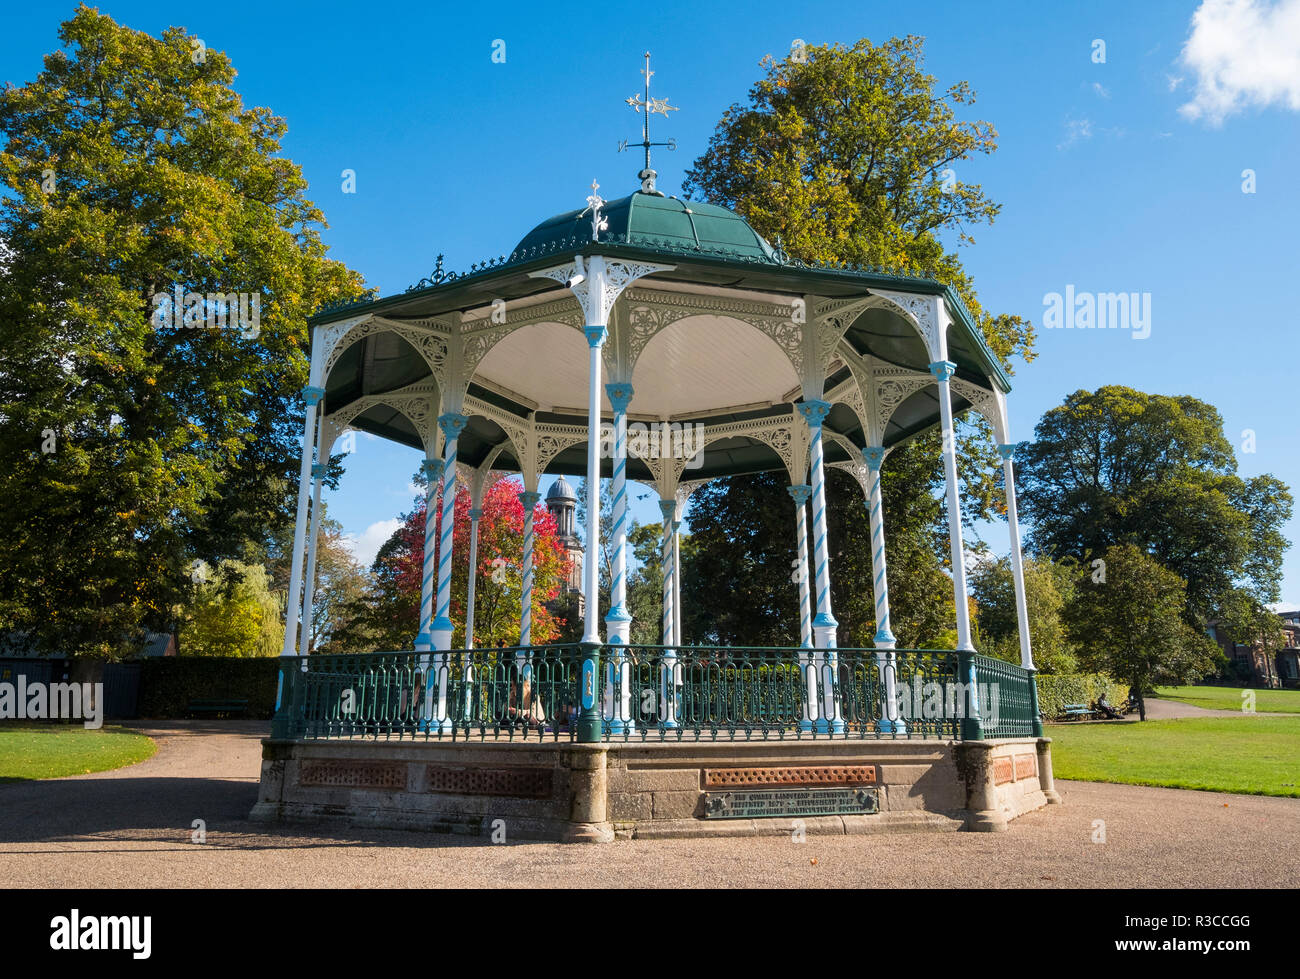 Victorian bandstand in the Quarry, Shrewsbury, Shropshire, England, UK - Stock Image